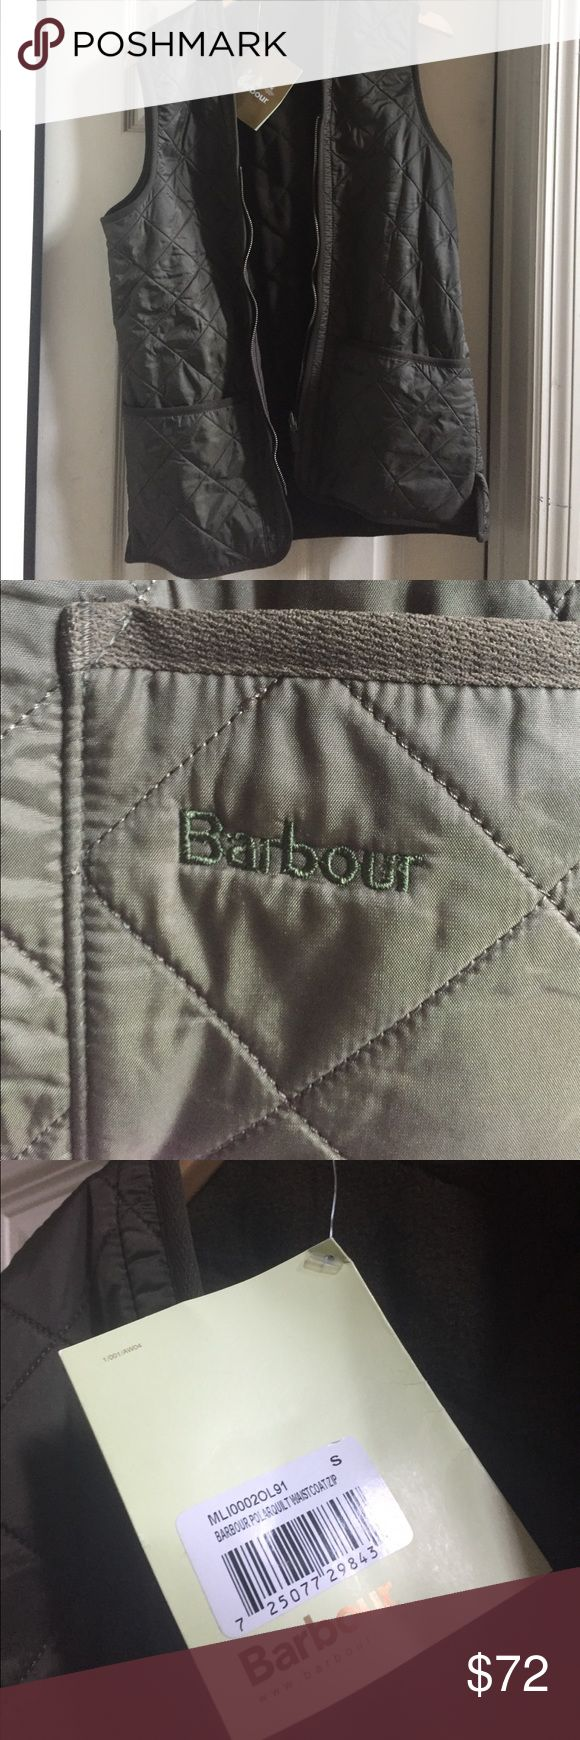 NEW WITH TAGS BARBOUR VEST Beautiful olive green Barbour vest! Barbour Jackets & Coats Vests